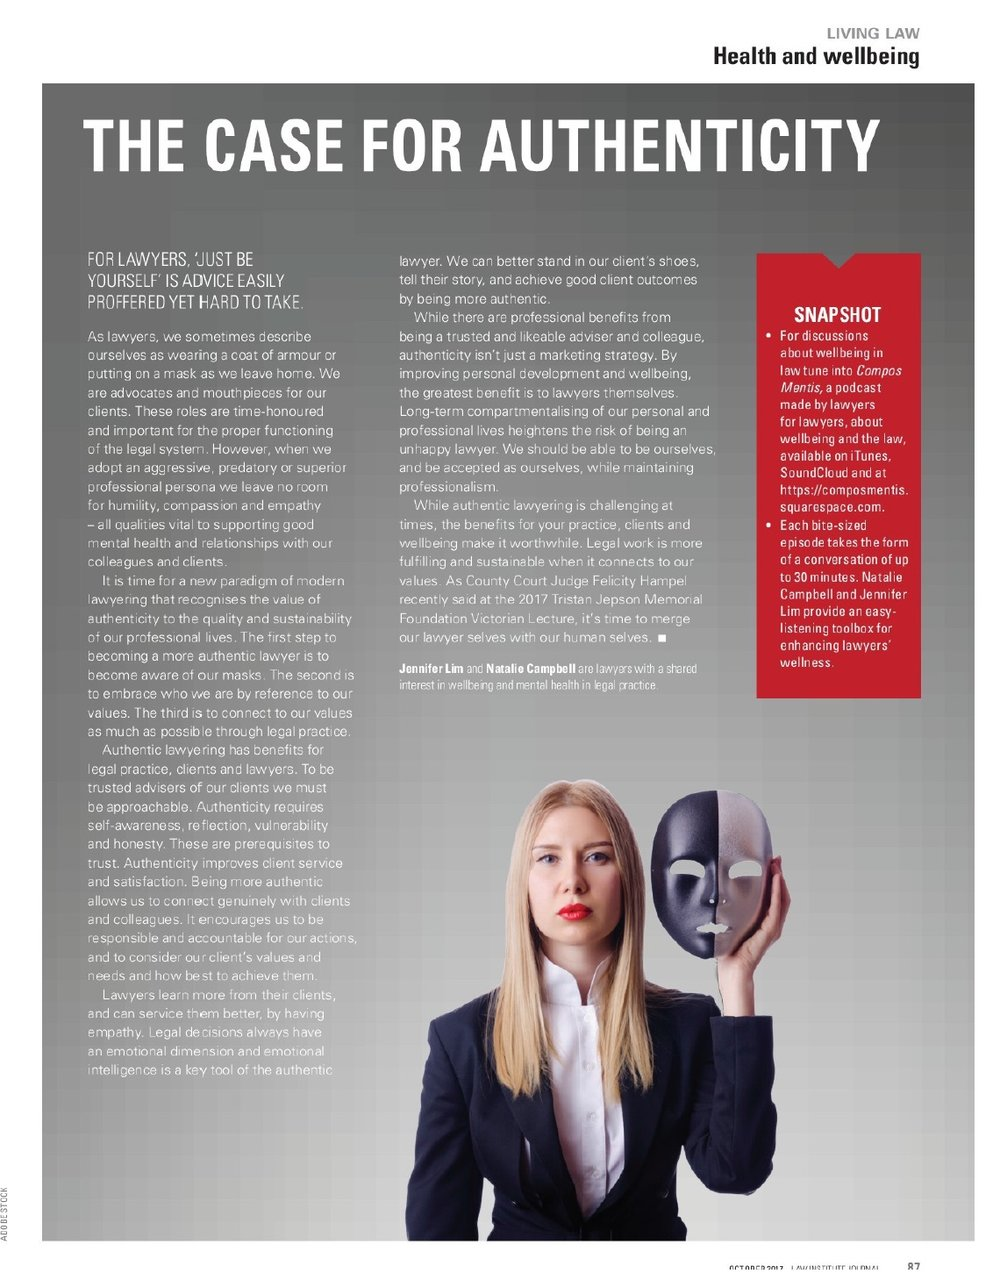 Authenticity LIV article grab.jpeg